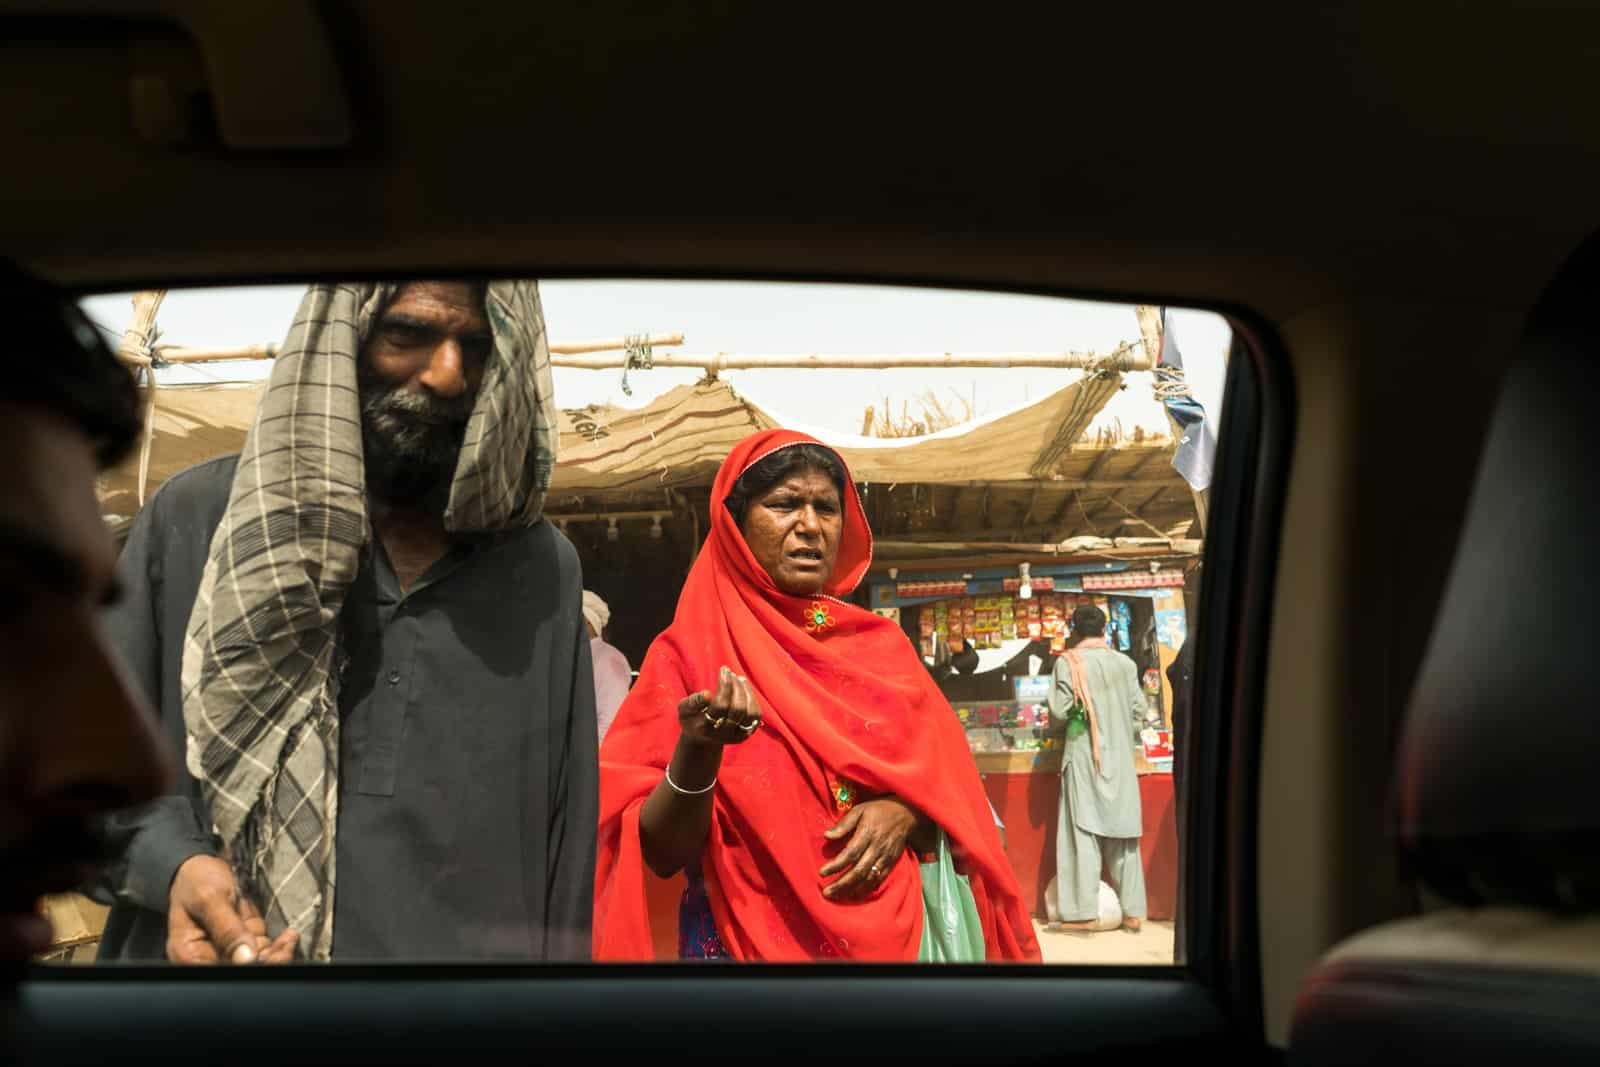 The Urs of Lal Shahbaz Qalandar in Sehwan, Pakistan - Beggars outside a car window - Lost With Purpose travel blog